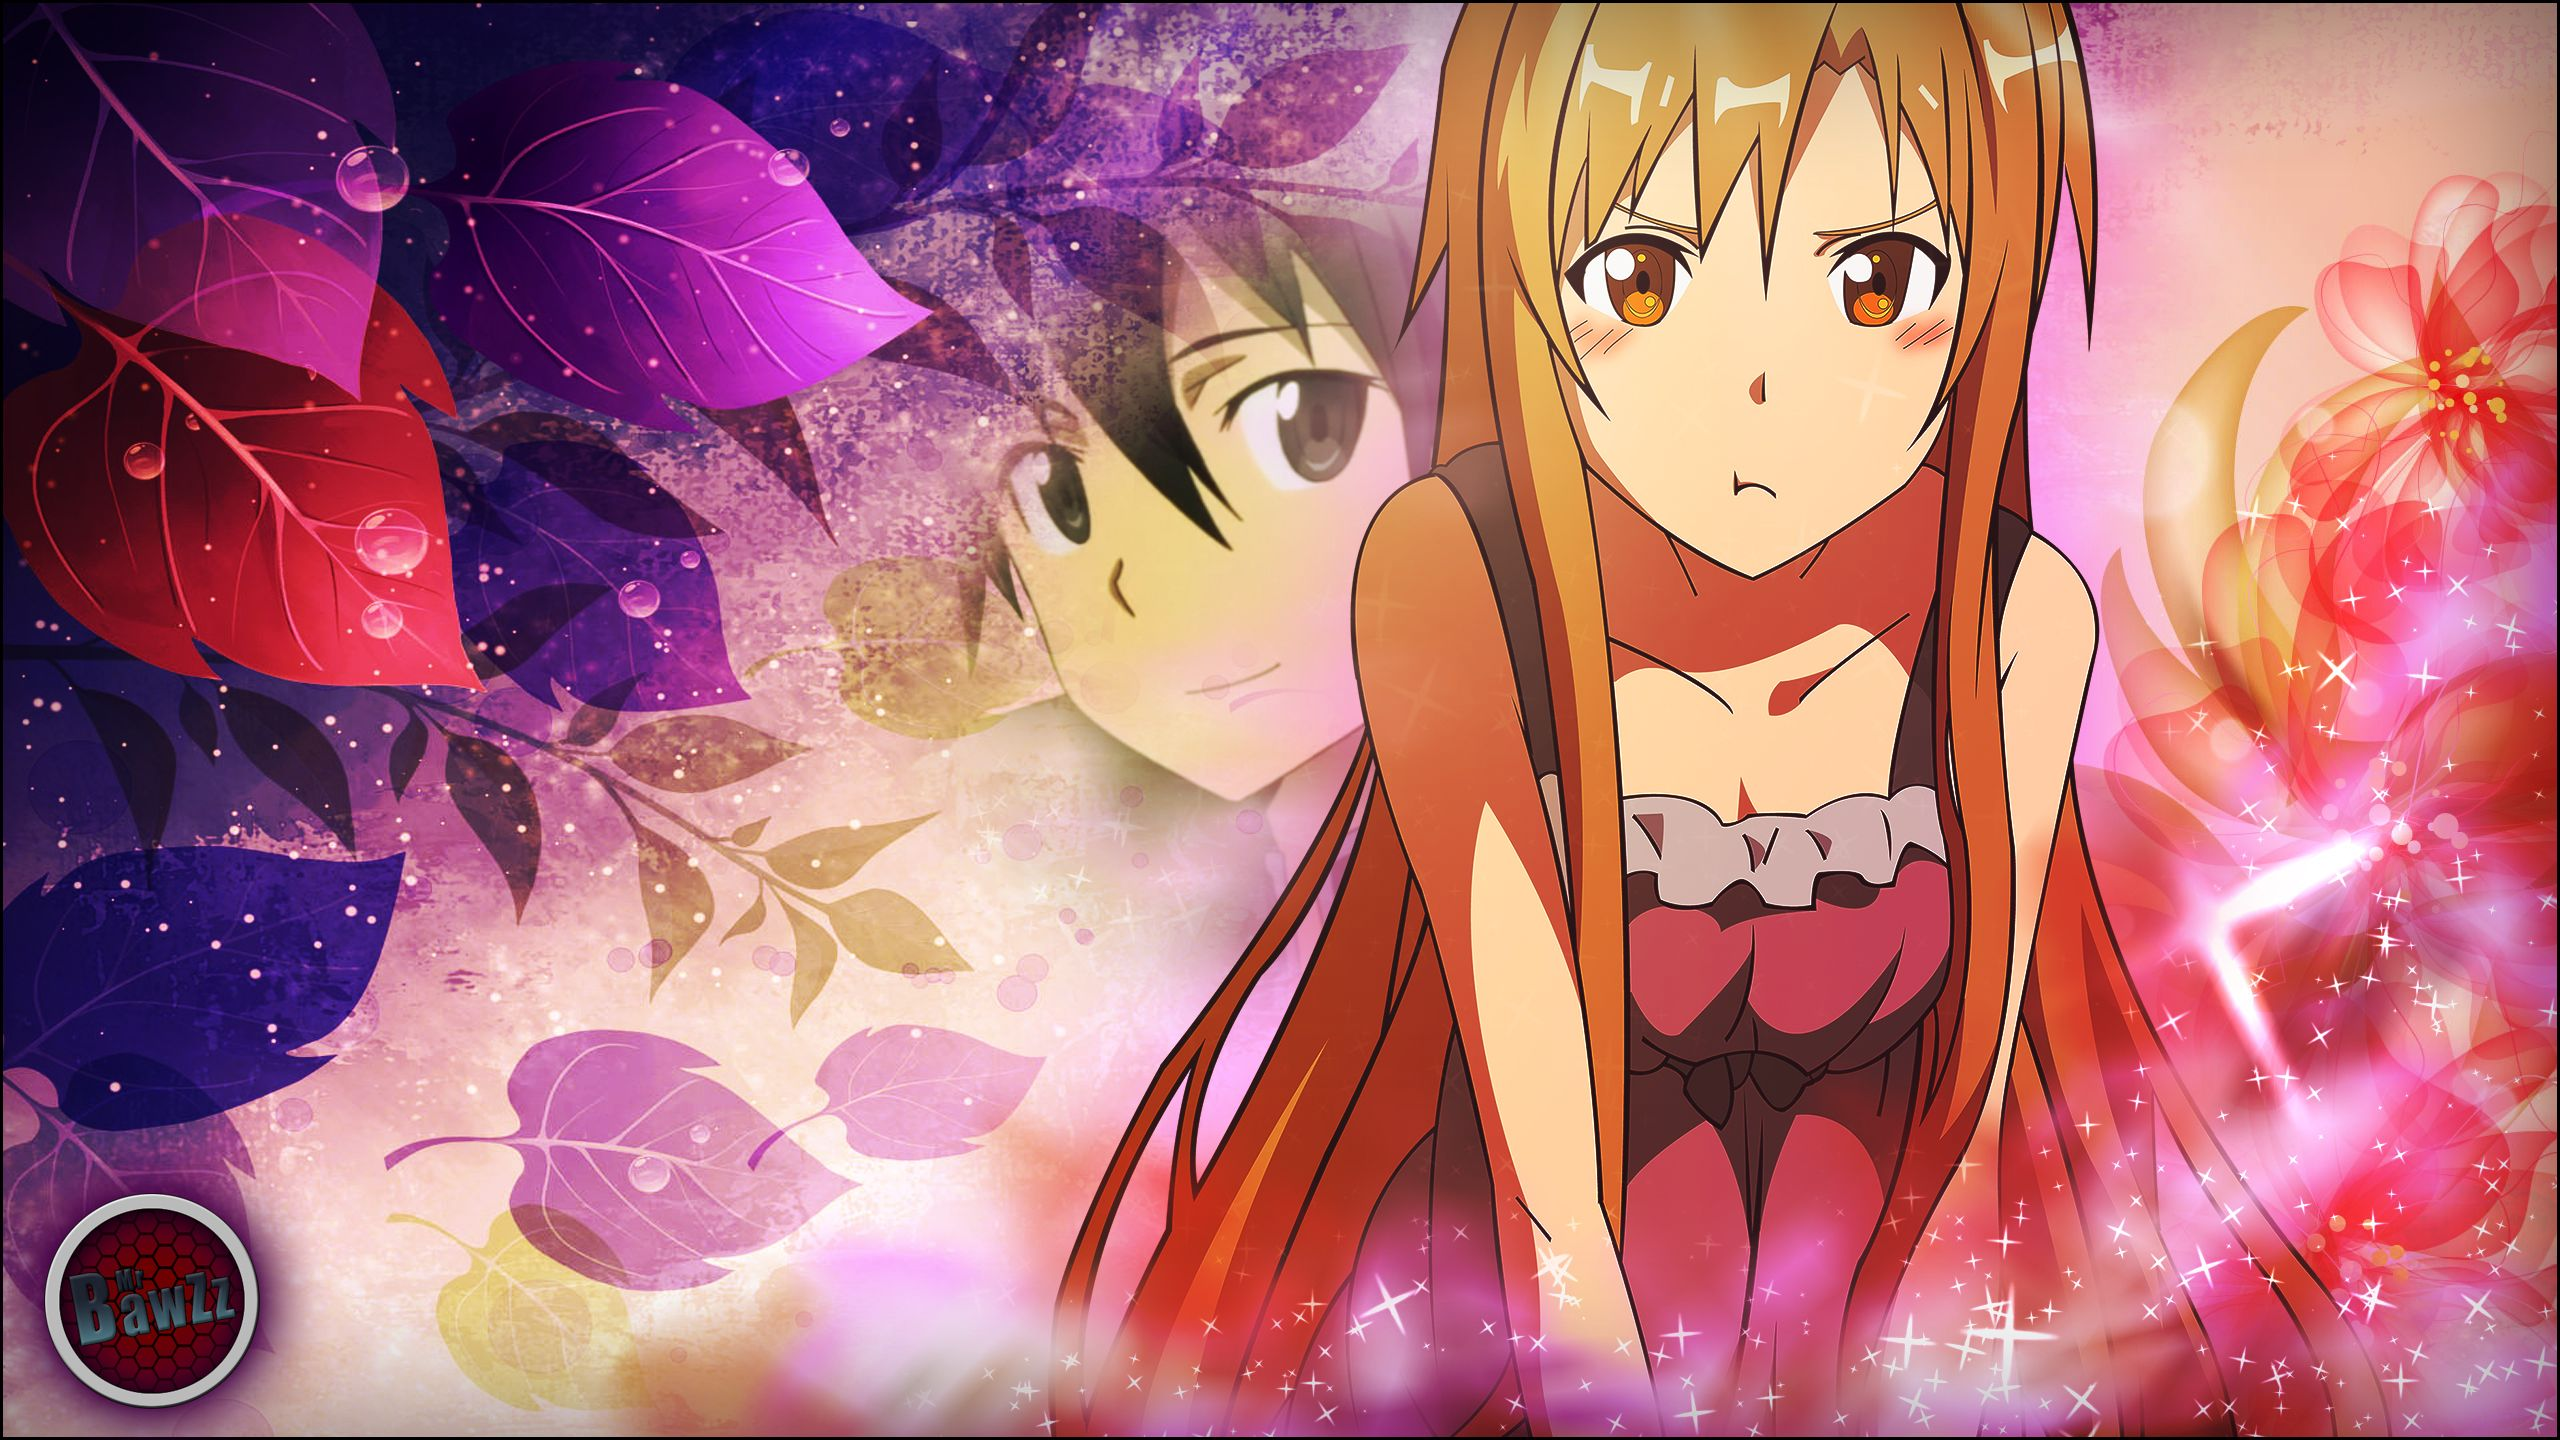 Sword Art Online Yuuki Asuna Anime Girls Wallpapers Hd Desktop